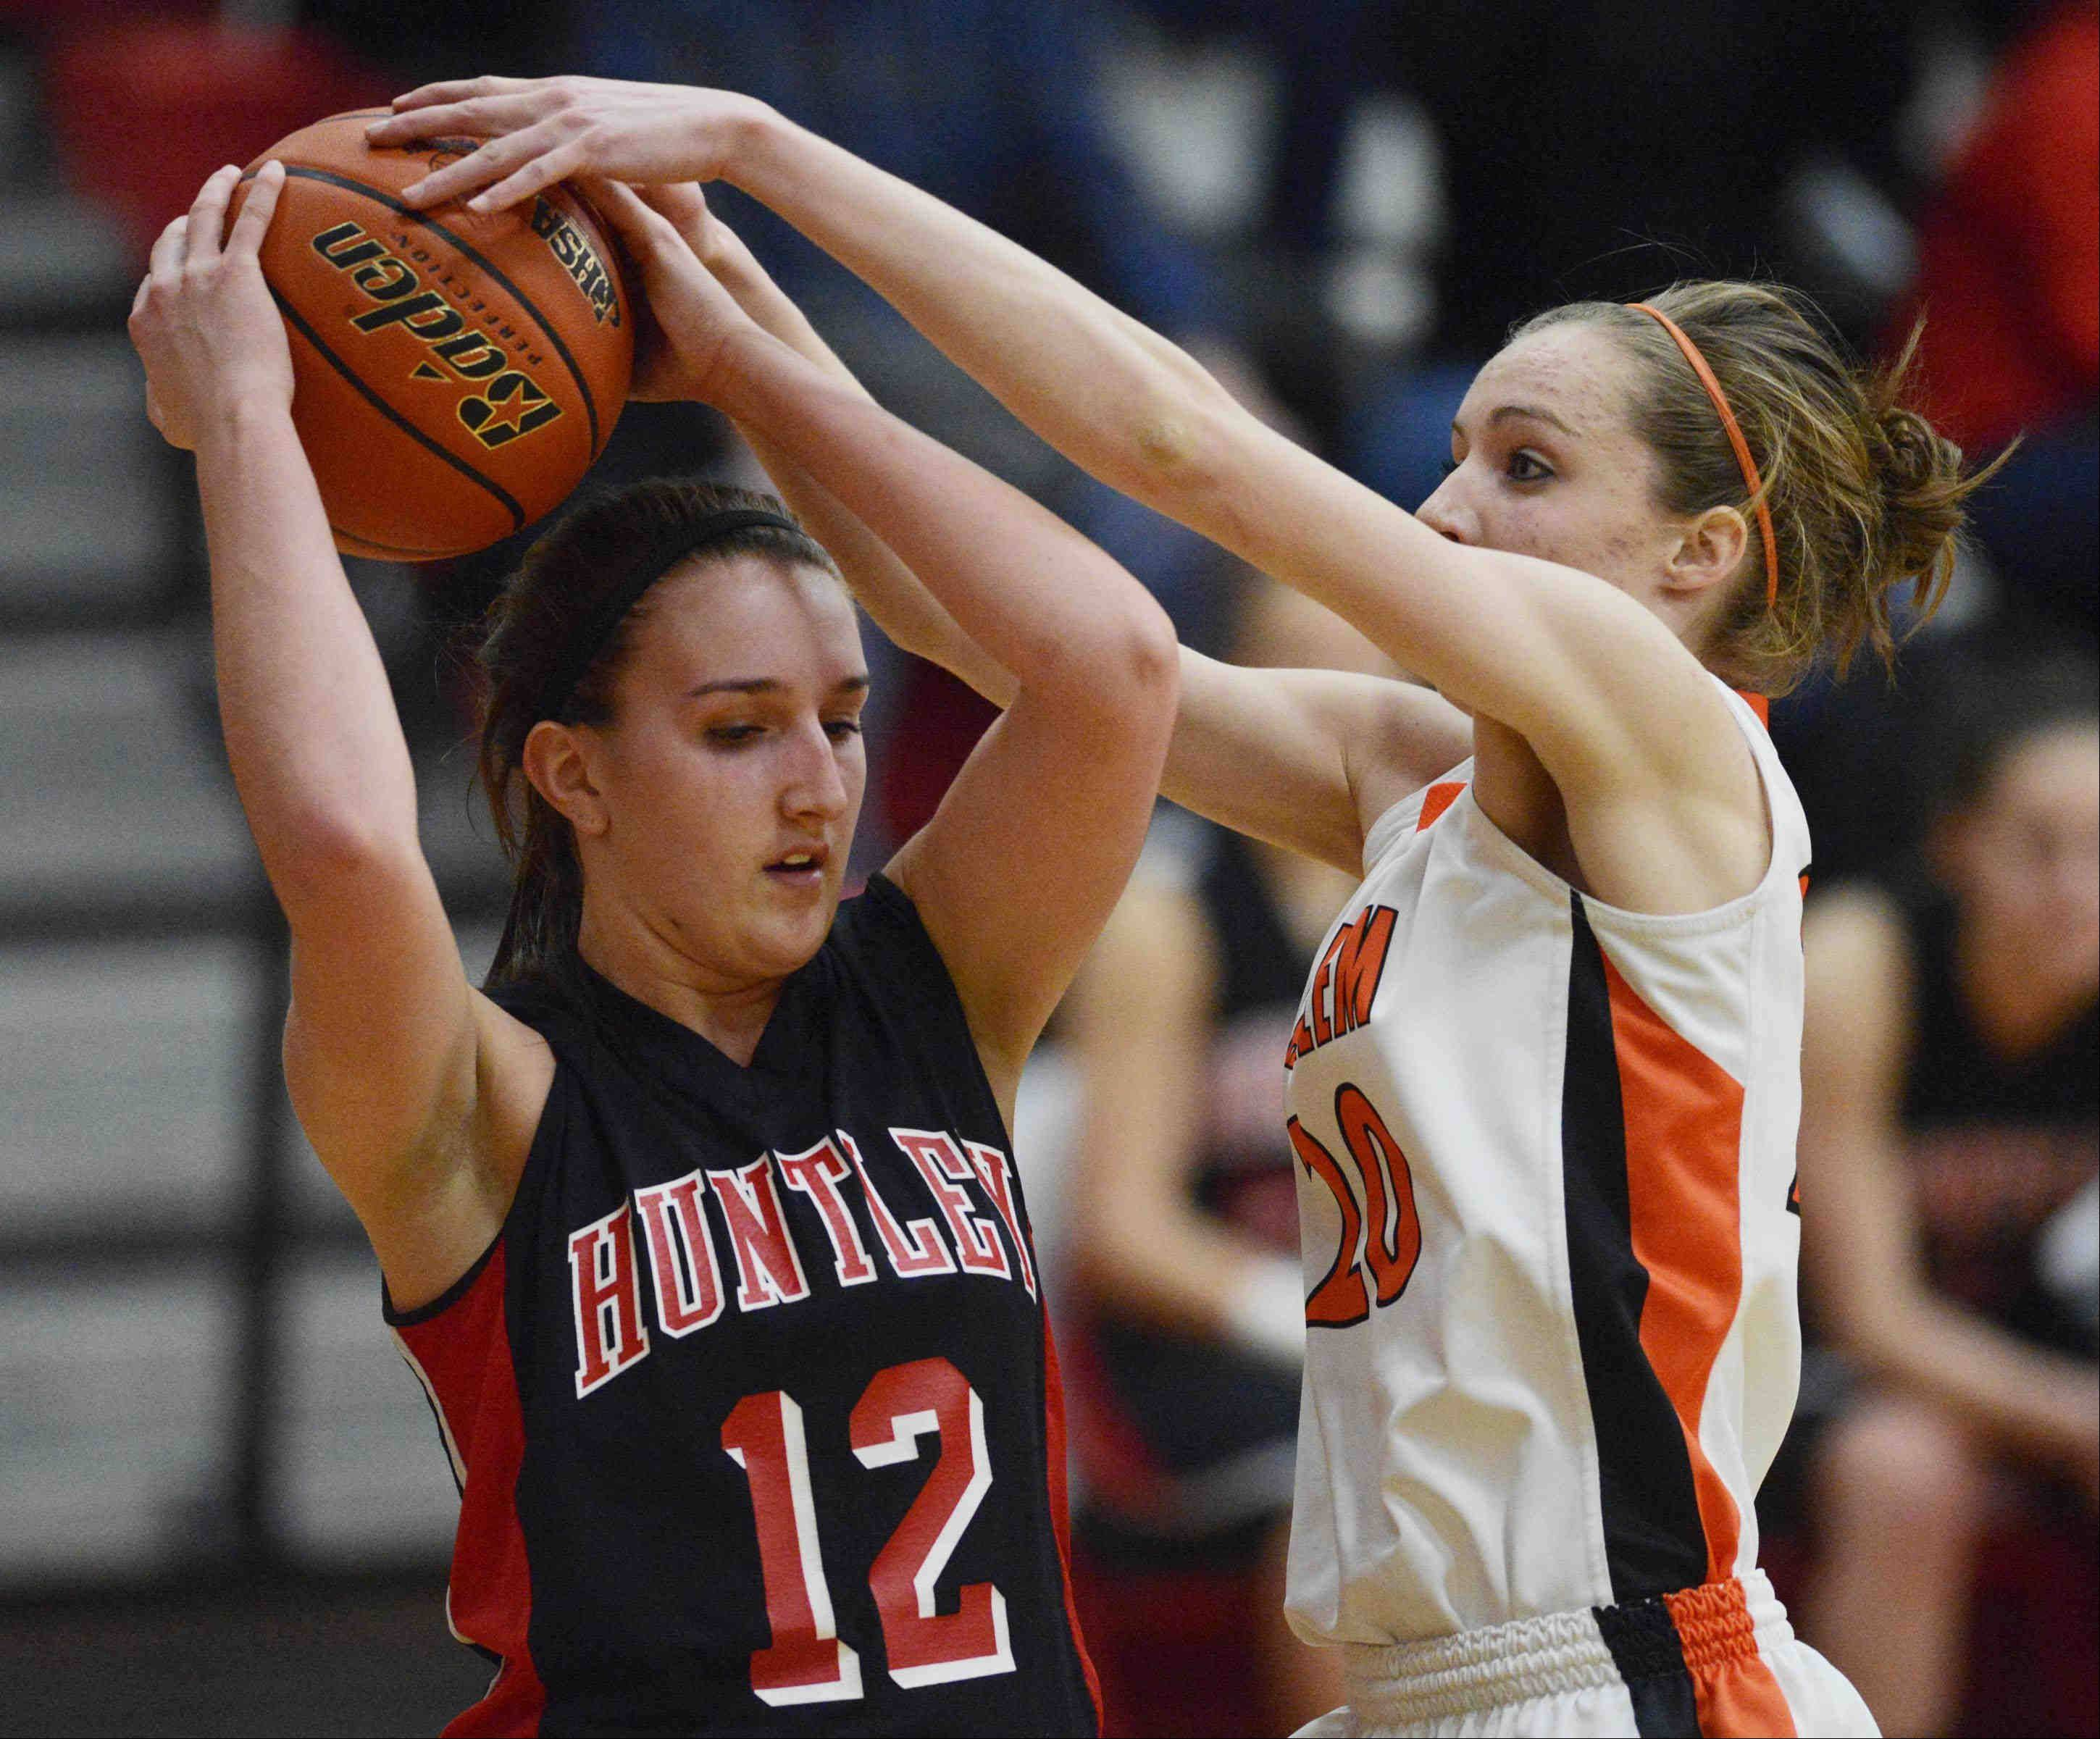 Harlem's Theresa Heitz tries to get to the ball by from Huntley's Haley Ream.